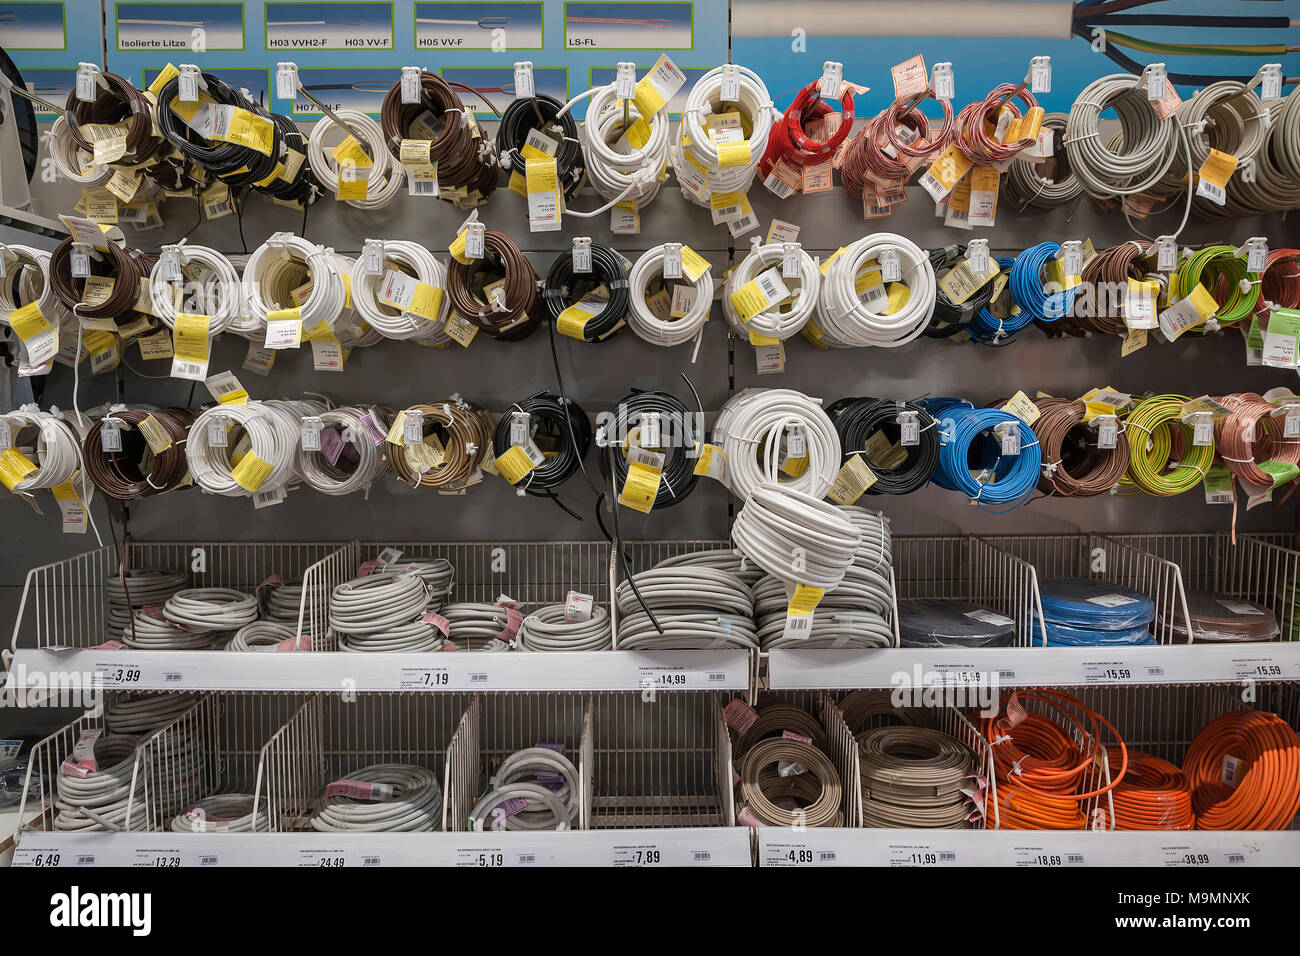 Electrical supplies, electric cables hanging on shelves, hardware store, interior, Bavaria, Germany - Stock Image